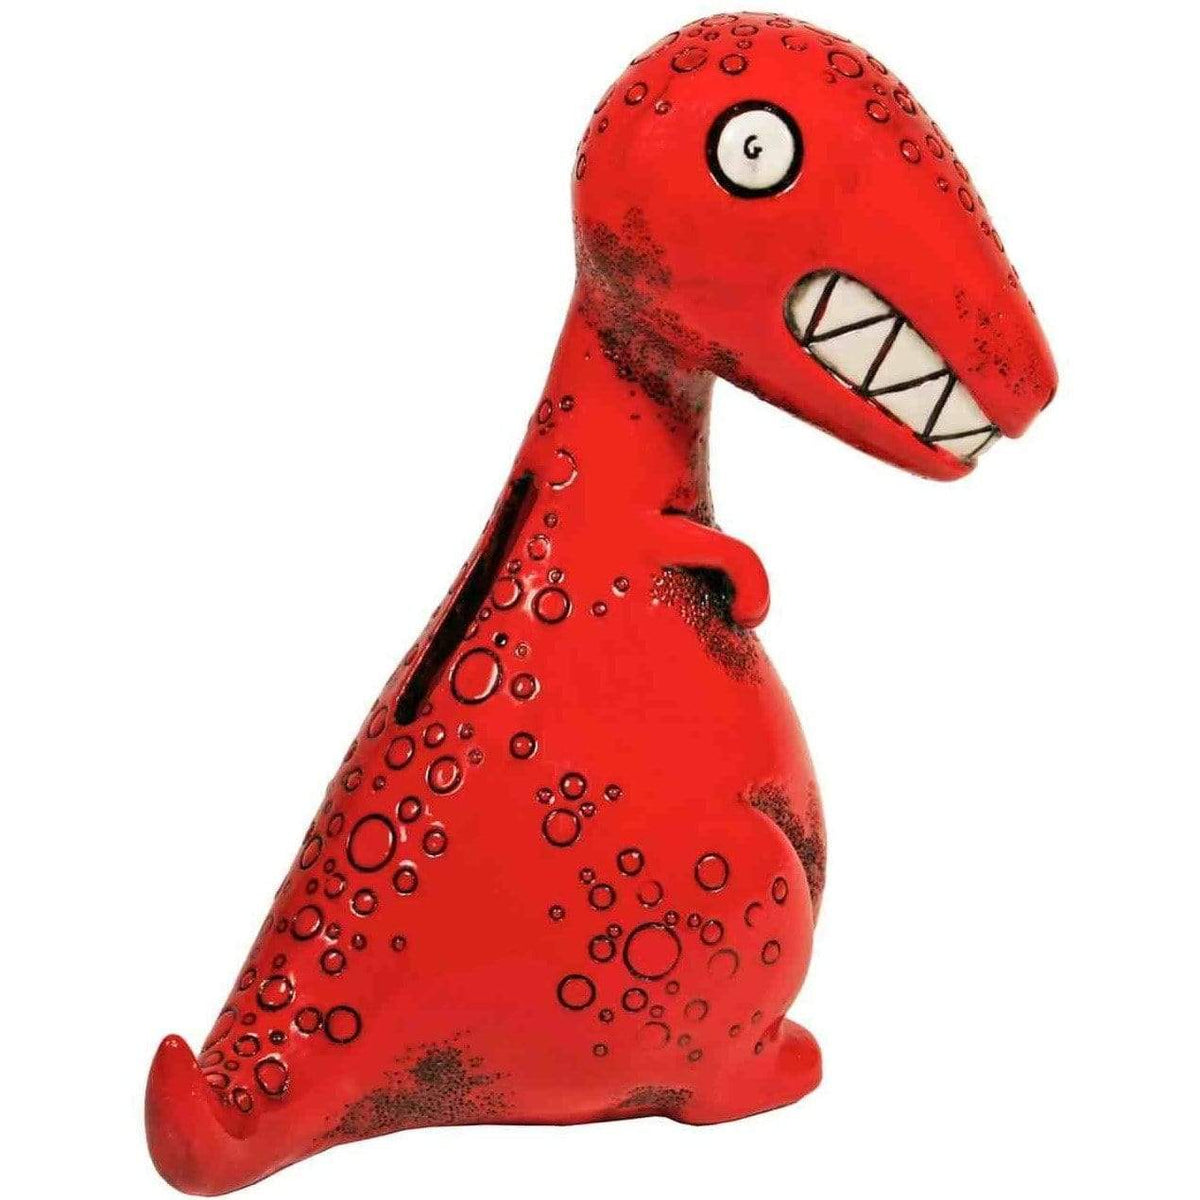 All Grins Dino - Money Bank